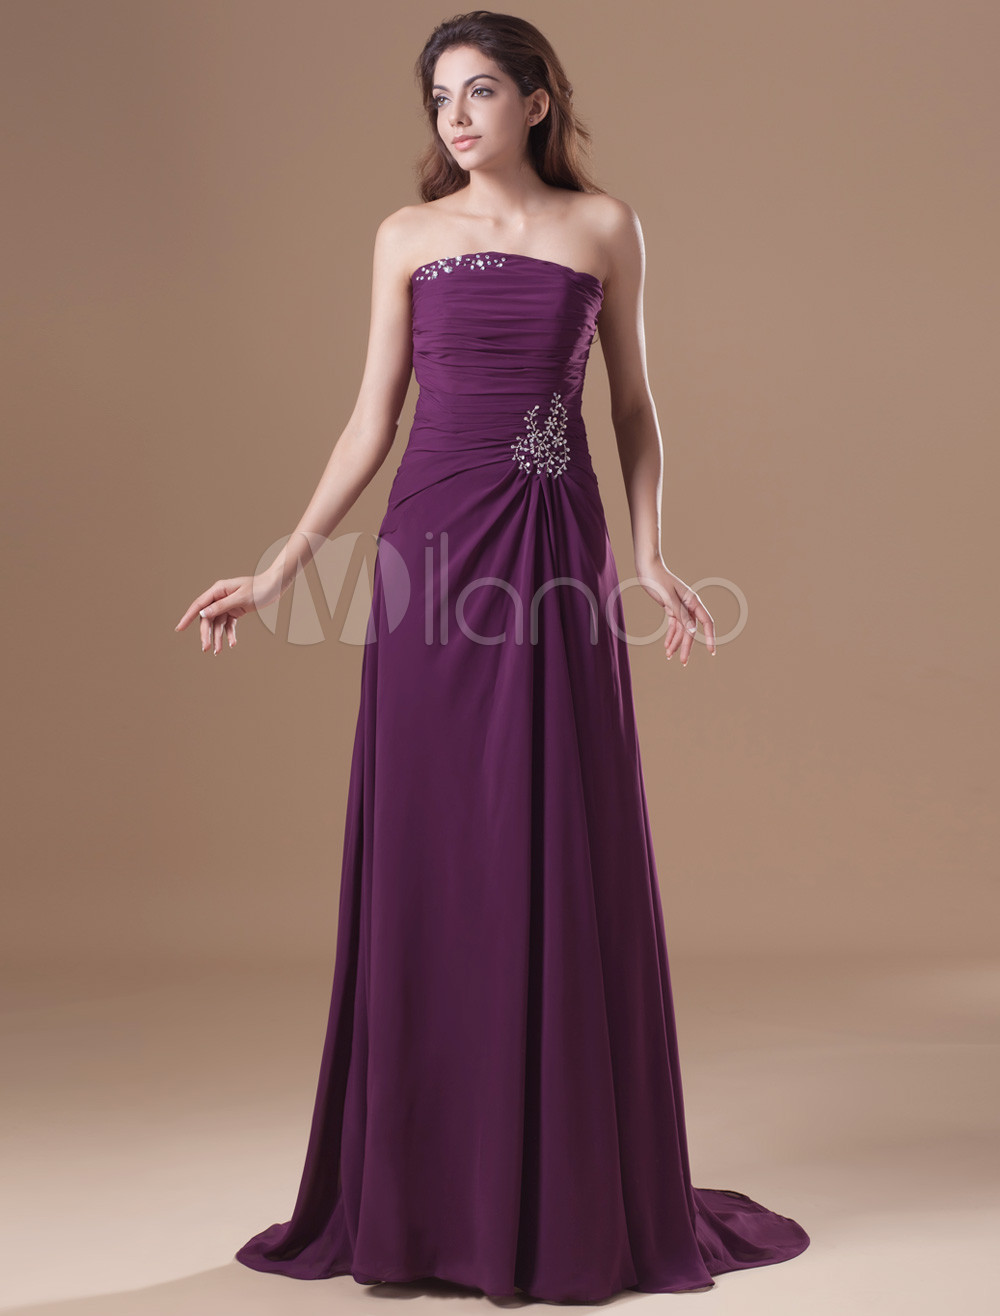 Elegant Grape Chiffon Beading Strapless Women's Evening Dress